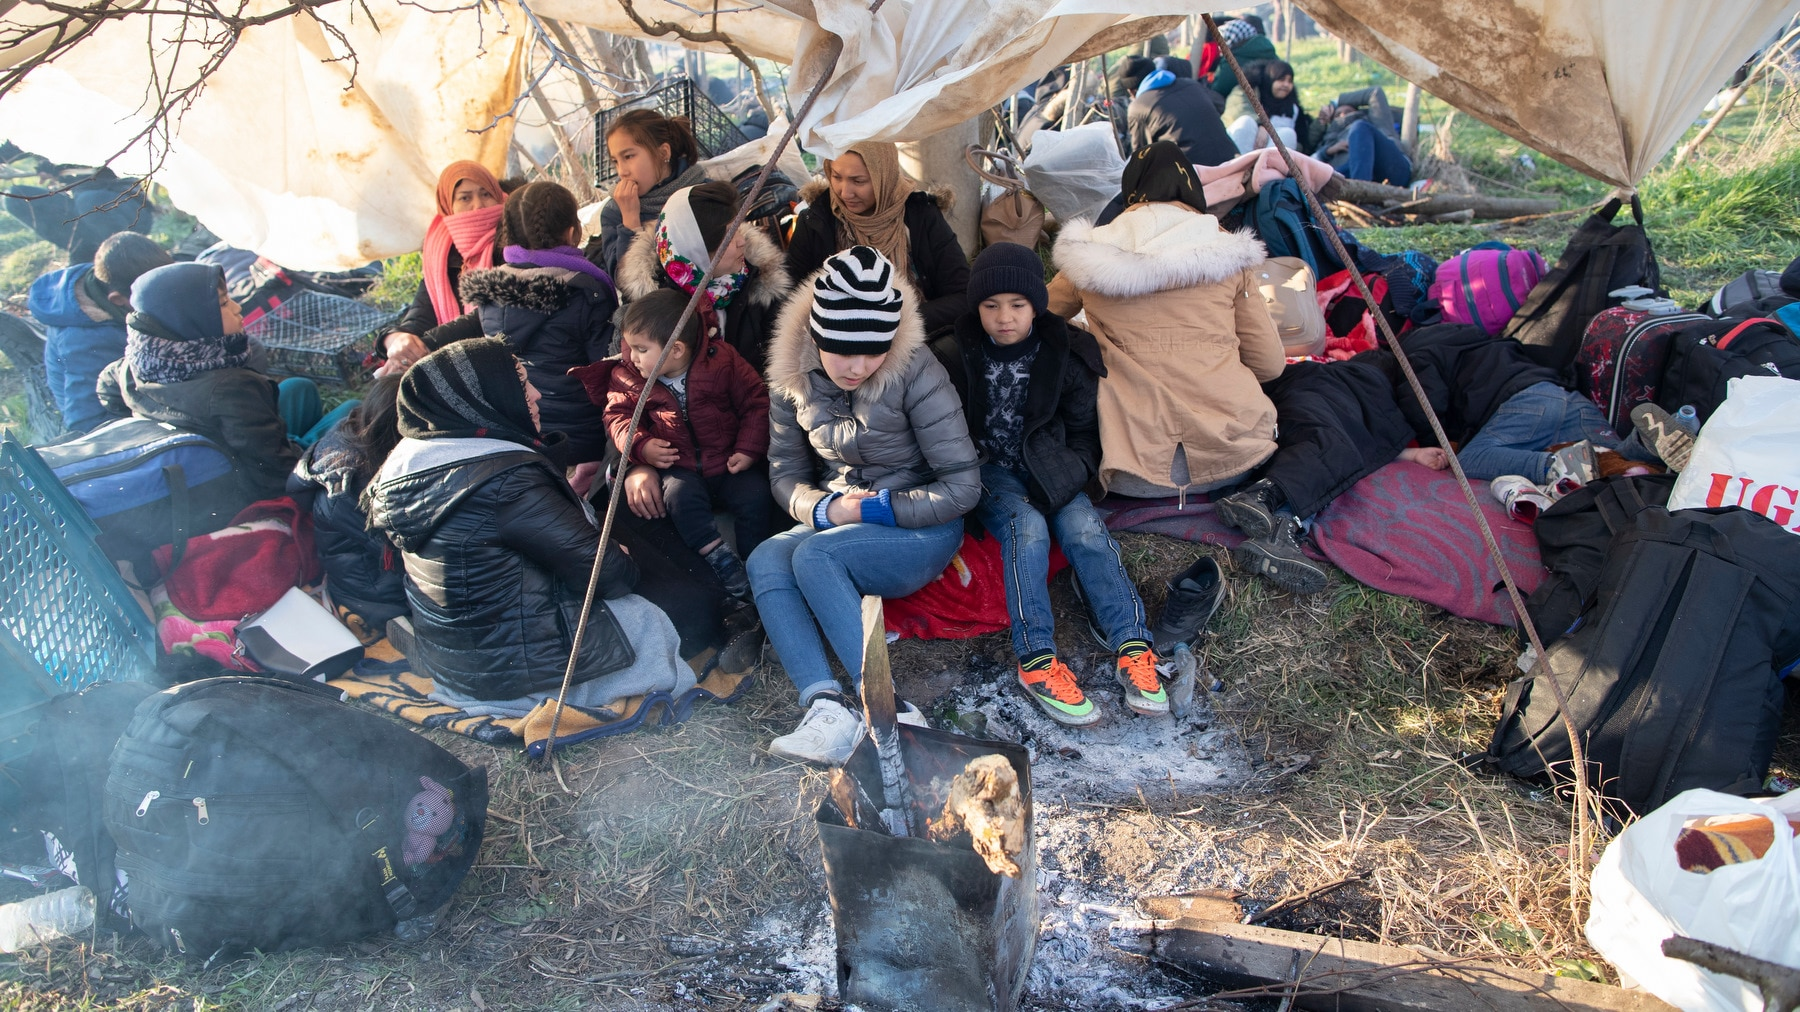 The UN says some 13,000 migrants have gathered along the Turkish-Greek border.